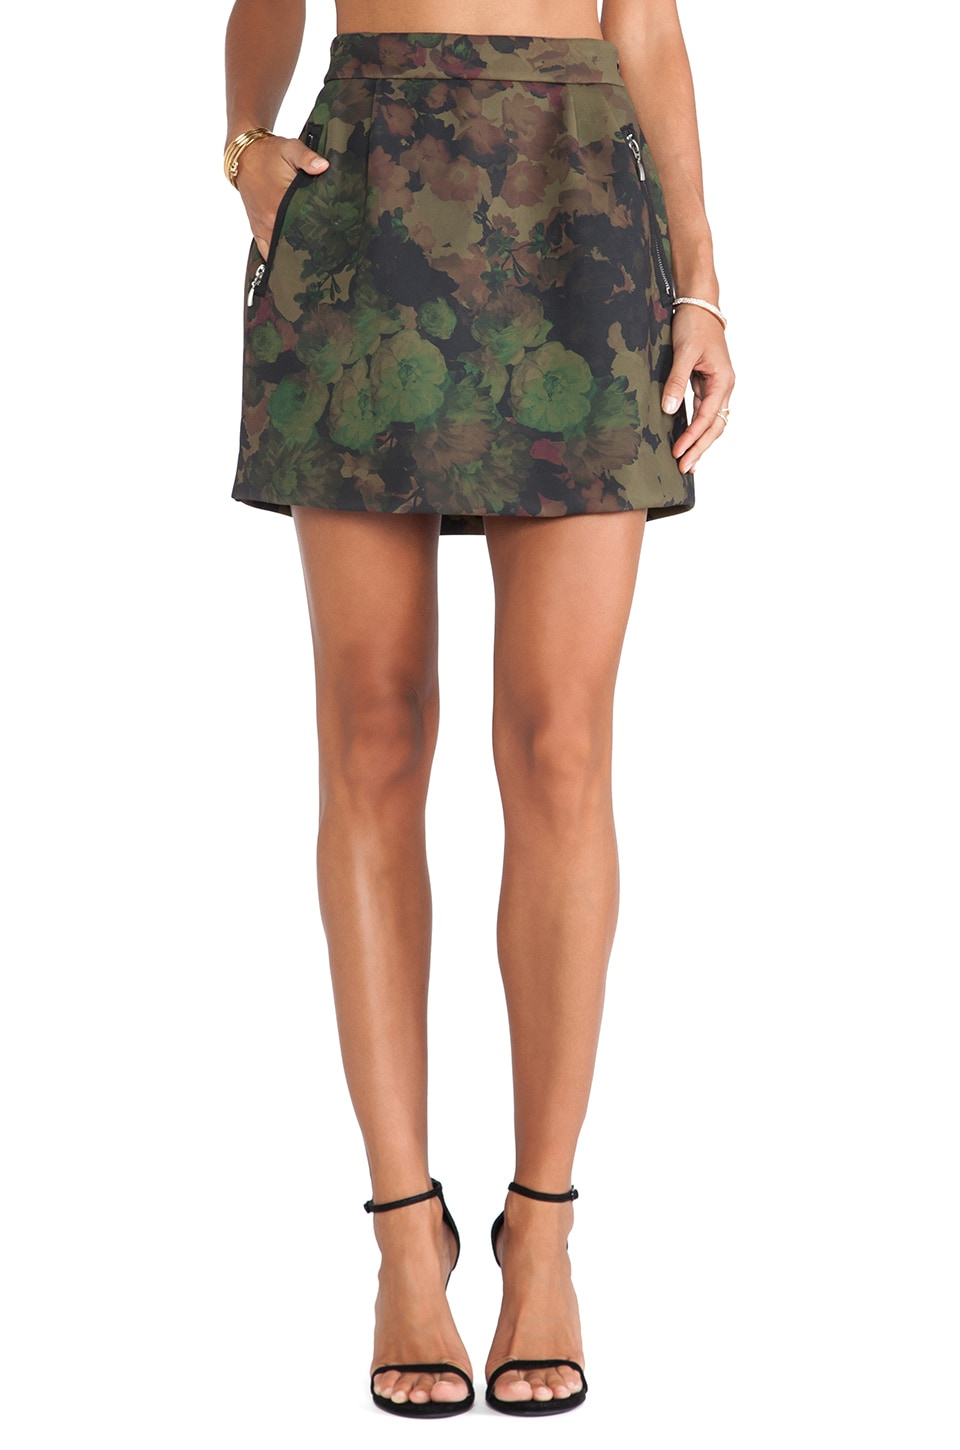 Essentiel Antwerp Hedonic Bond Girl Skirt in Flower Camo